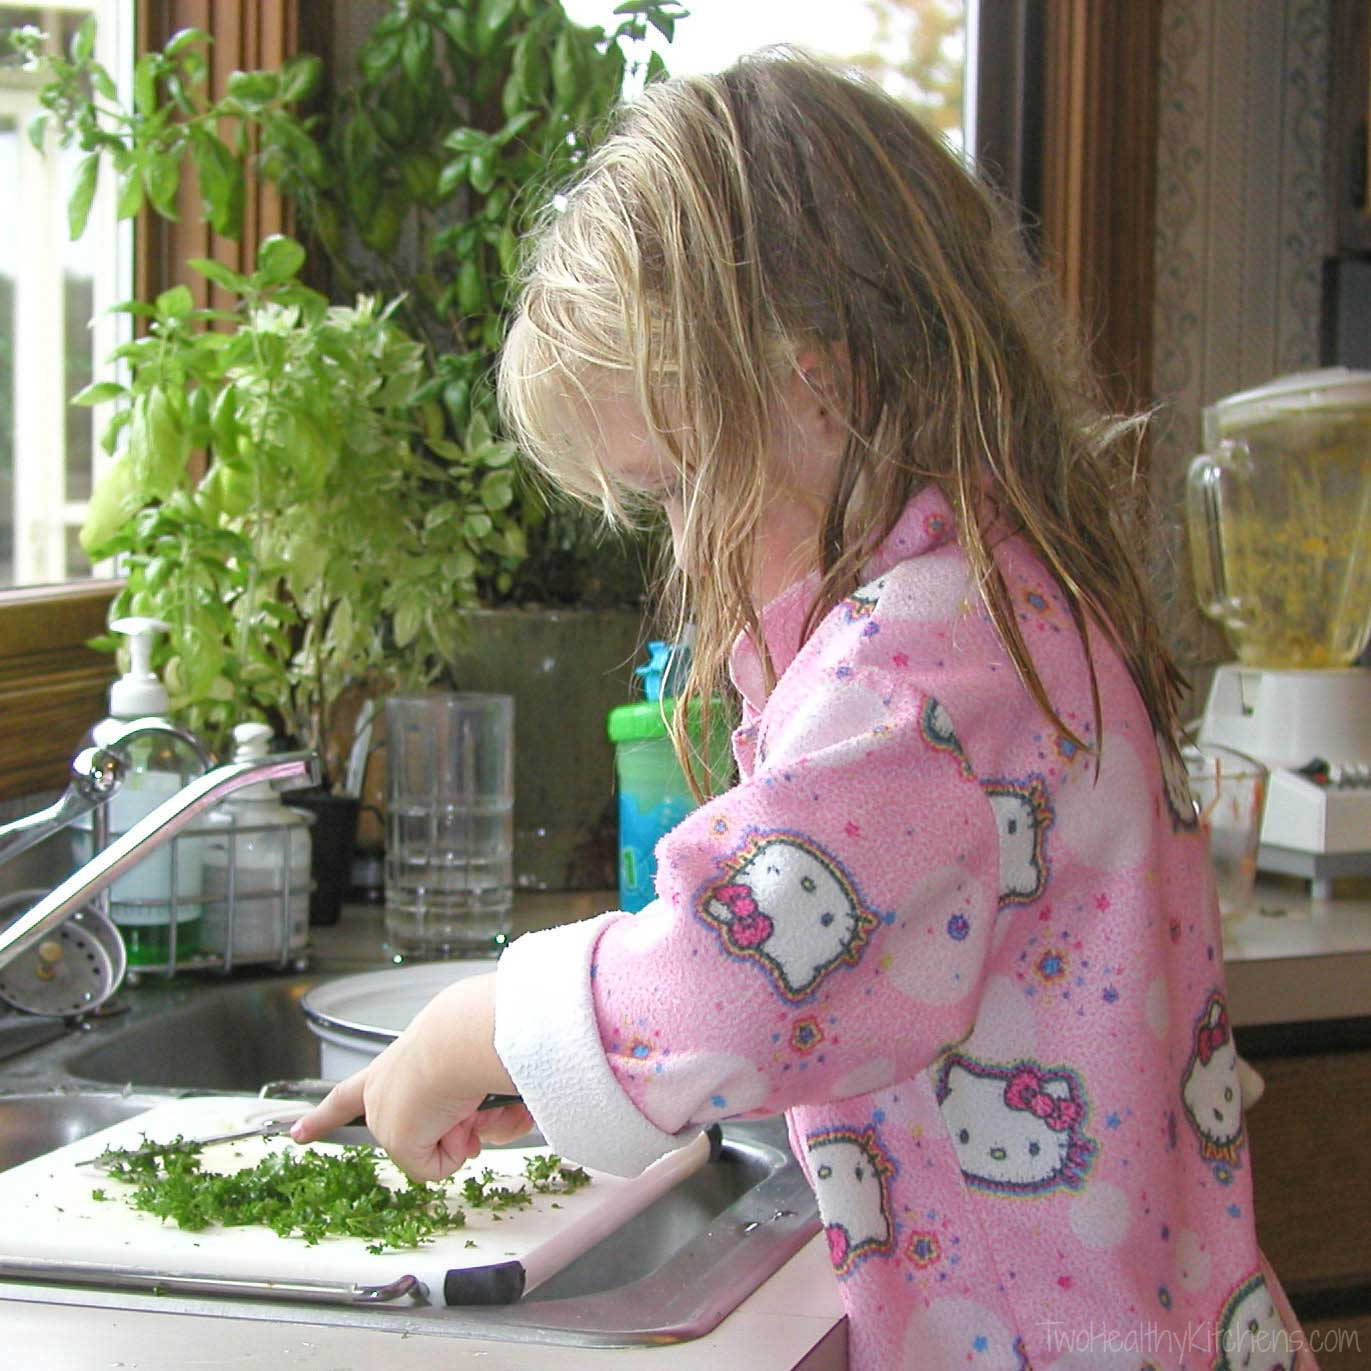 You're never too young to learn to cook! Even little kids can start to learn basic cooking skills that'll last a lifetime!